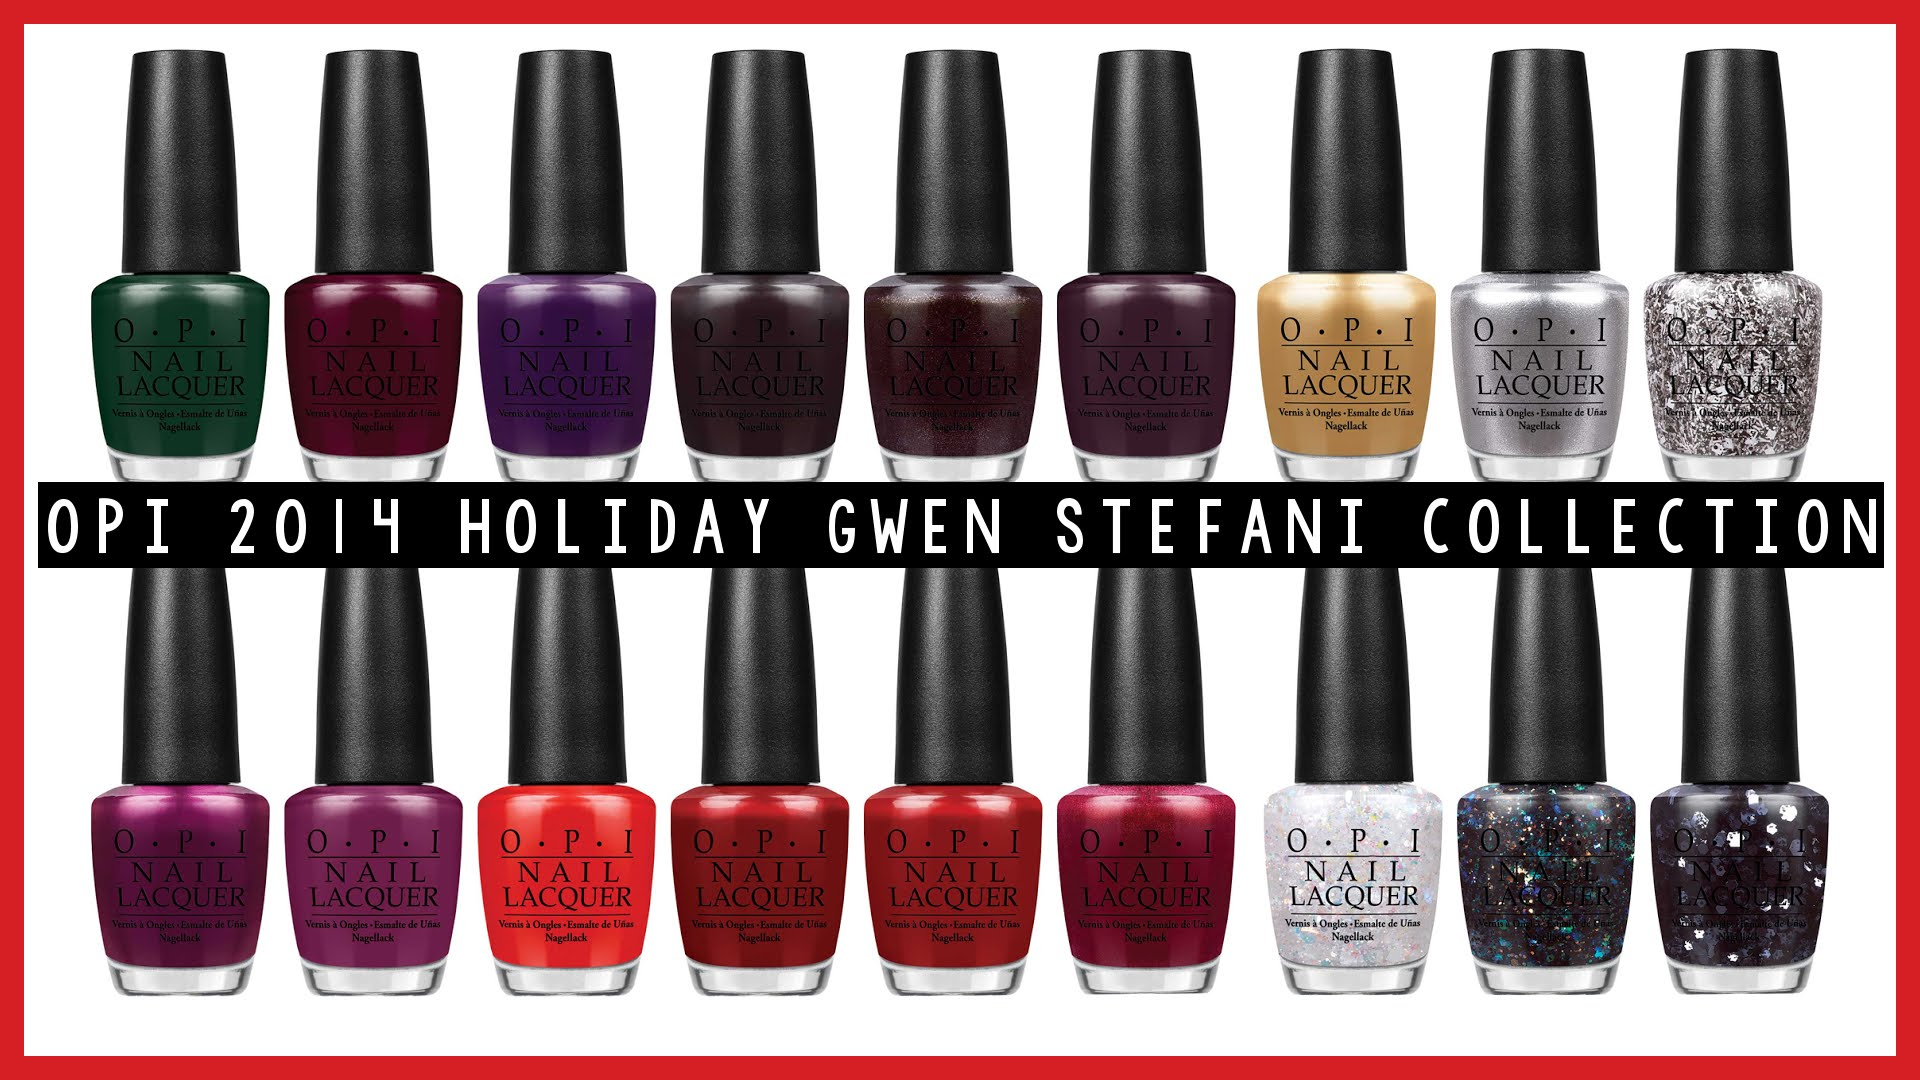 Get A Full Review And look Into Gwen Stefani\'s OPI Nail Collection!